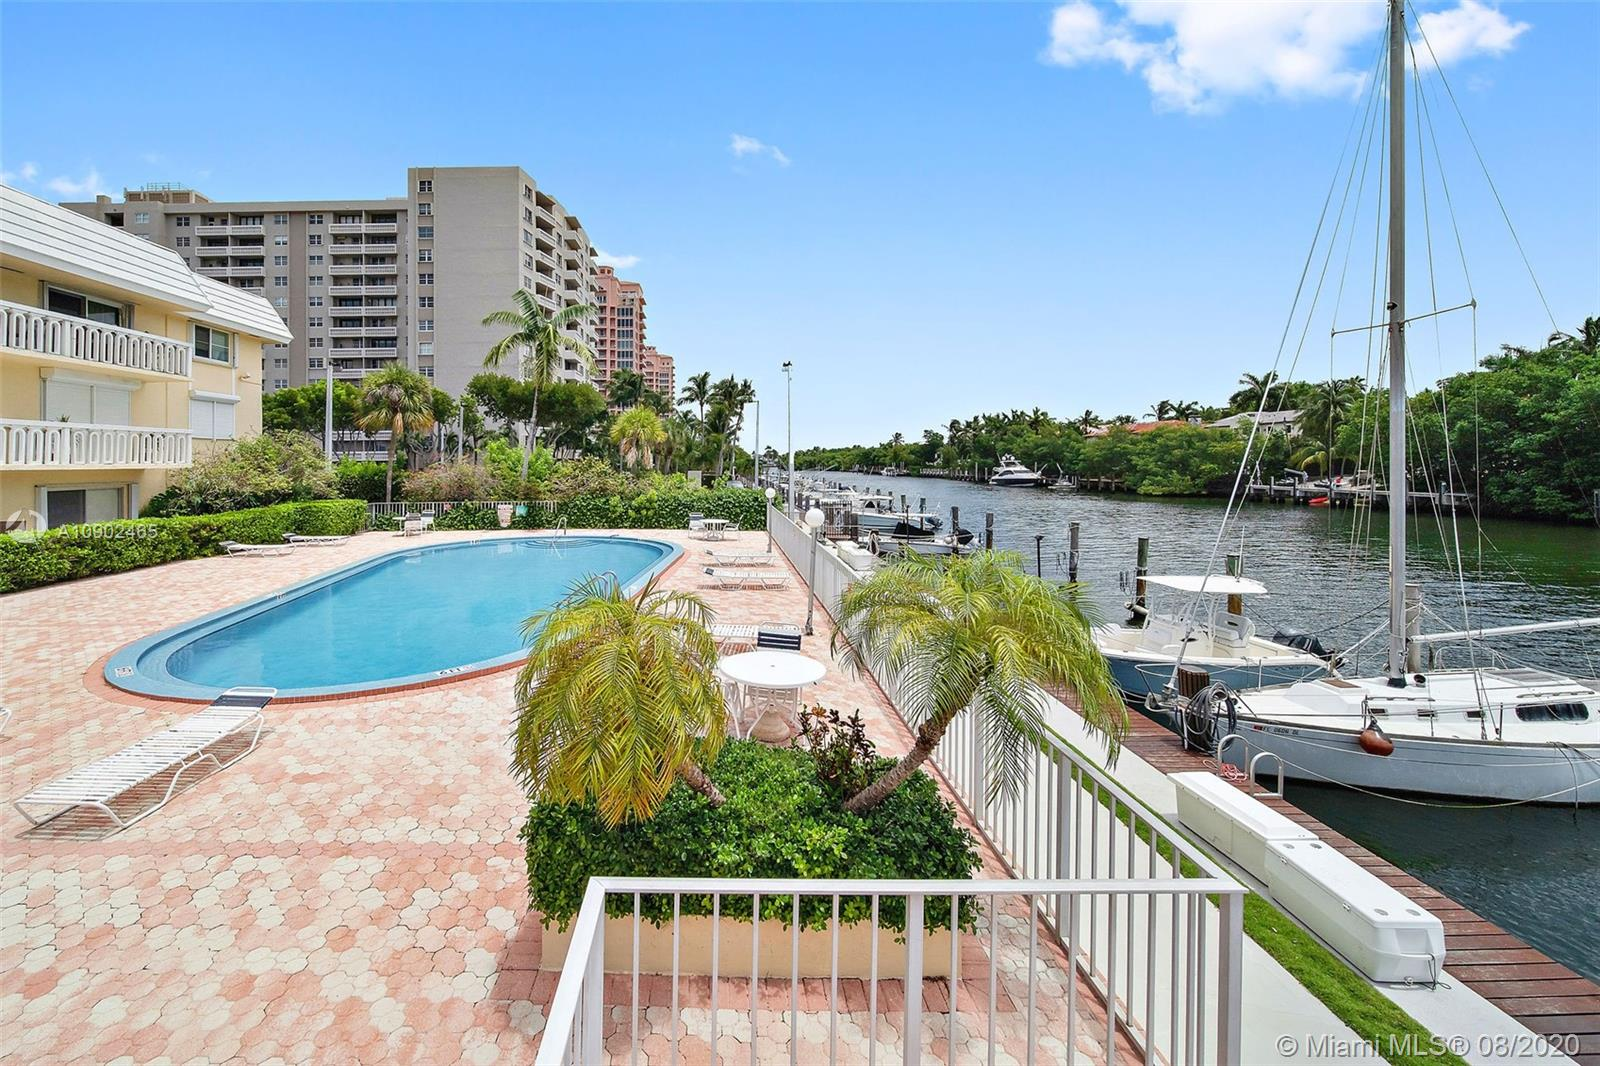 "REDUCED! Waterfront Condo! Completely Remodeled! New Kitchen with Stainless Steel Appliances, Hardwood Floors throughout, New Bathrooms! Overlooking the Coral Gables Waterway, Boat Dock & Pool. 1 bed / 2 bath (888 sqft) condo is a gem! Large Walk-in Closets, tons of storage! Located on the first floor, this Condo feels like a house! Parking is steps to the condo. You can be ""Socially Distanced"" and go directly from the car to your condo without using elevators or seeing neighbors. Low Maintenance! Charming building on Exclusive Edgewater Drive in the heart of Coral Gables. Check out our virtual tour for a walkthrough of the property! Easy to Show!"